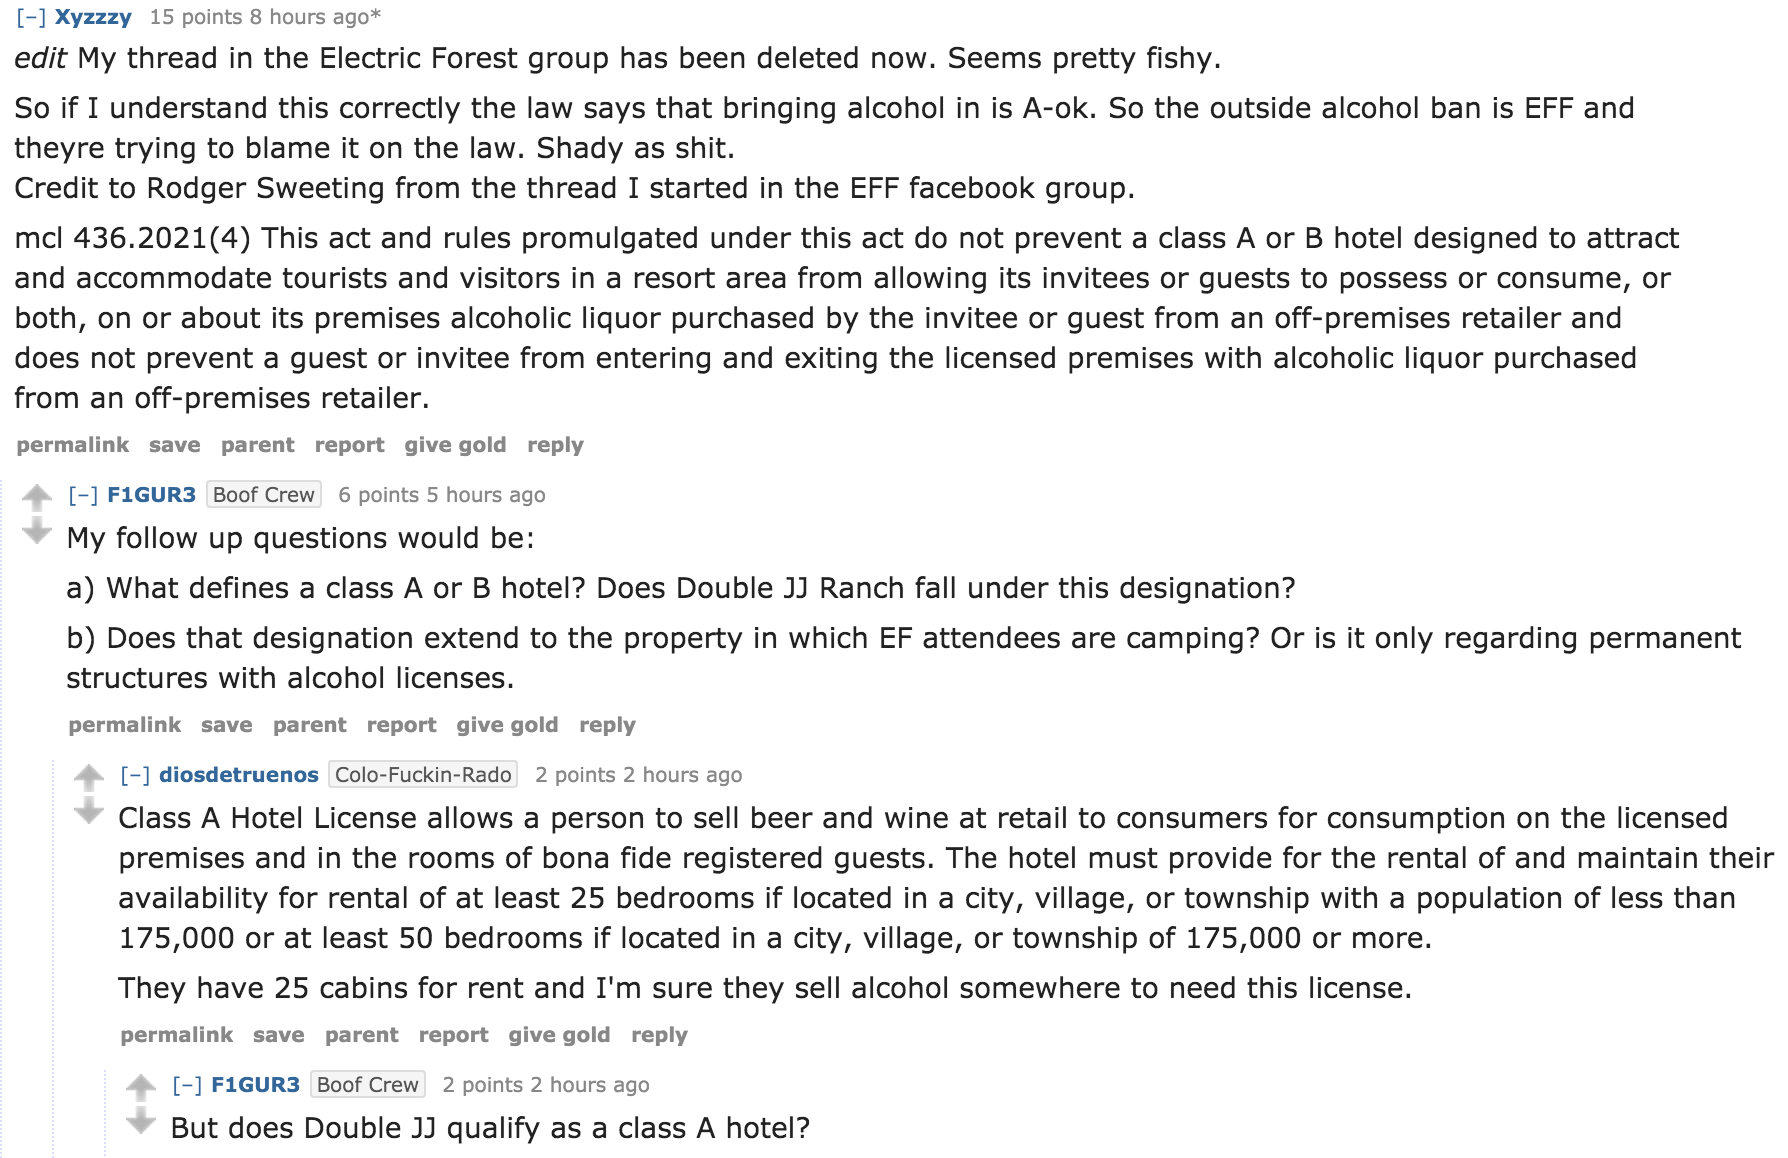 Electric Forest Bans Alcohol in Campgrounds and Venue_reddit-thread